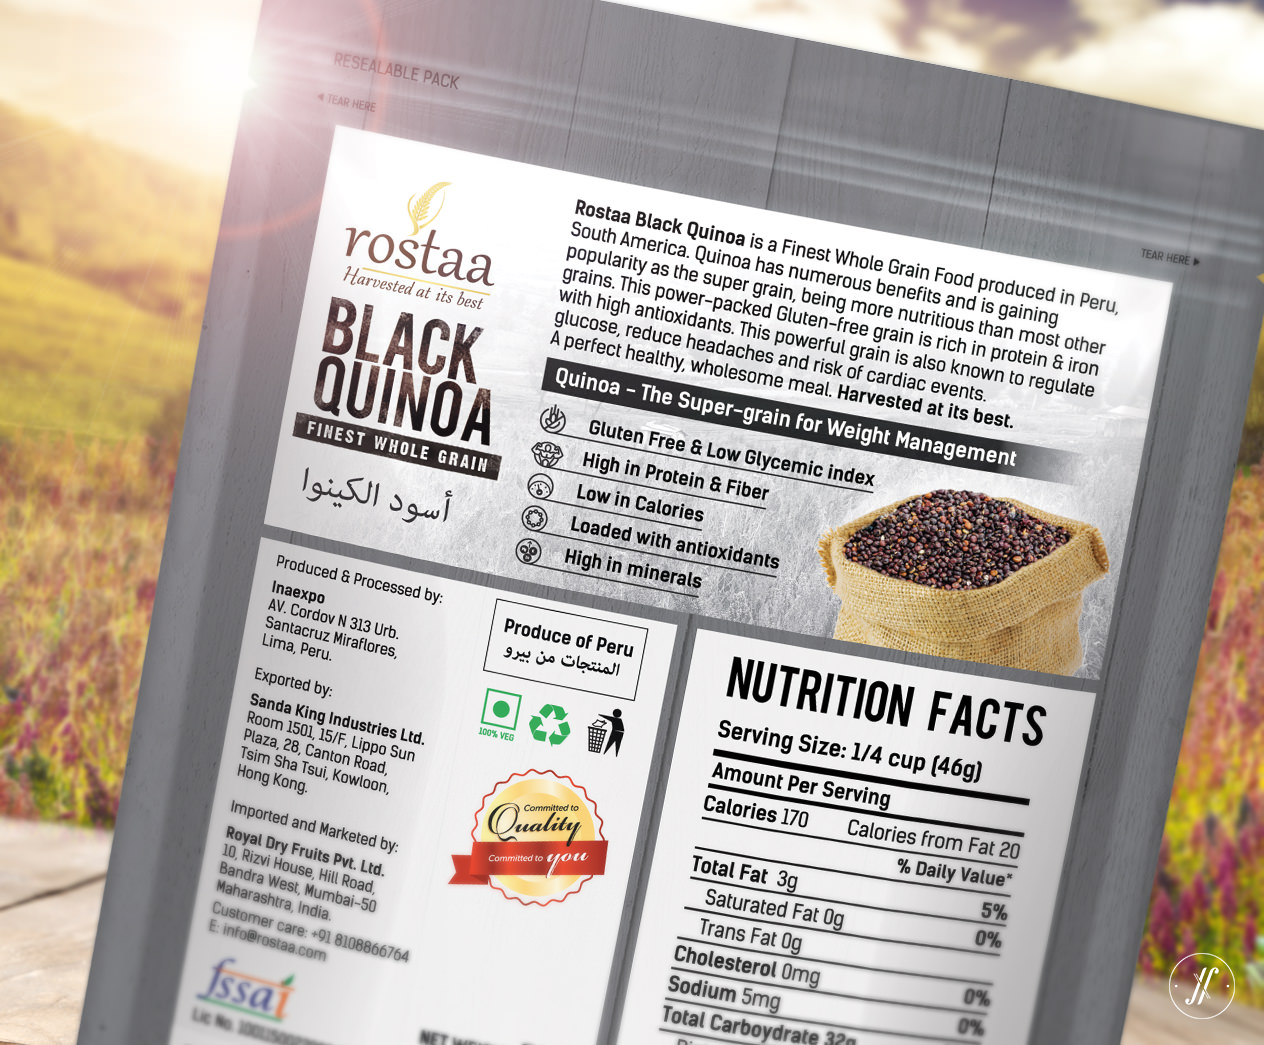 Yellow-Fishes-Best-Branding-Agency-Mumbai-India-Packaging-Design-Agency-Rostaa-Pacakging-Case-Study-Black-Quinoa-packaging-design-back-of-pack-design